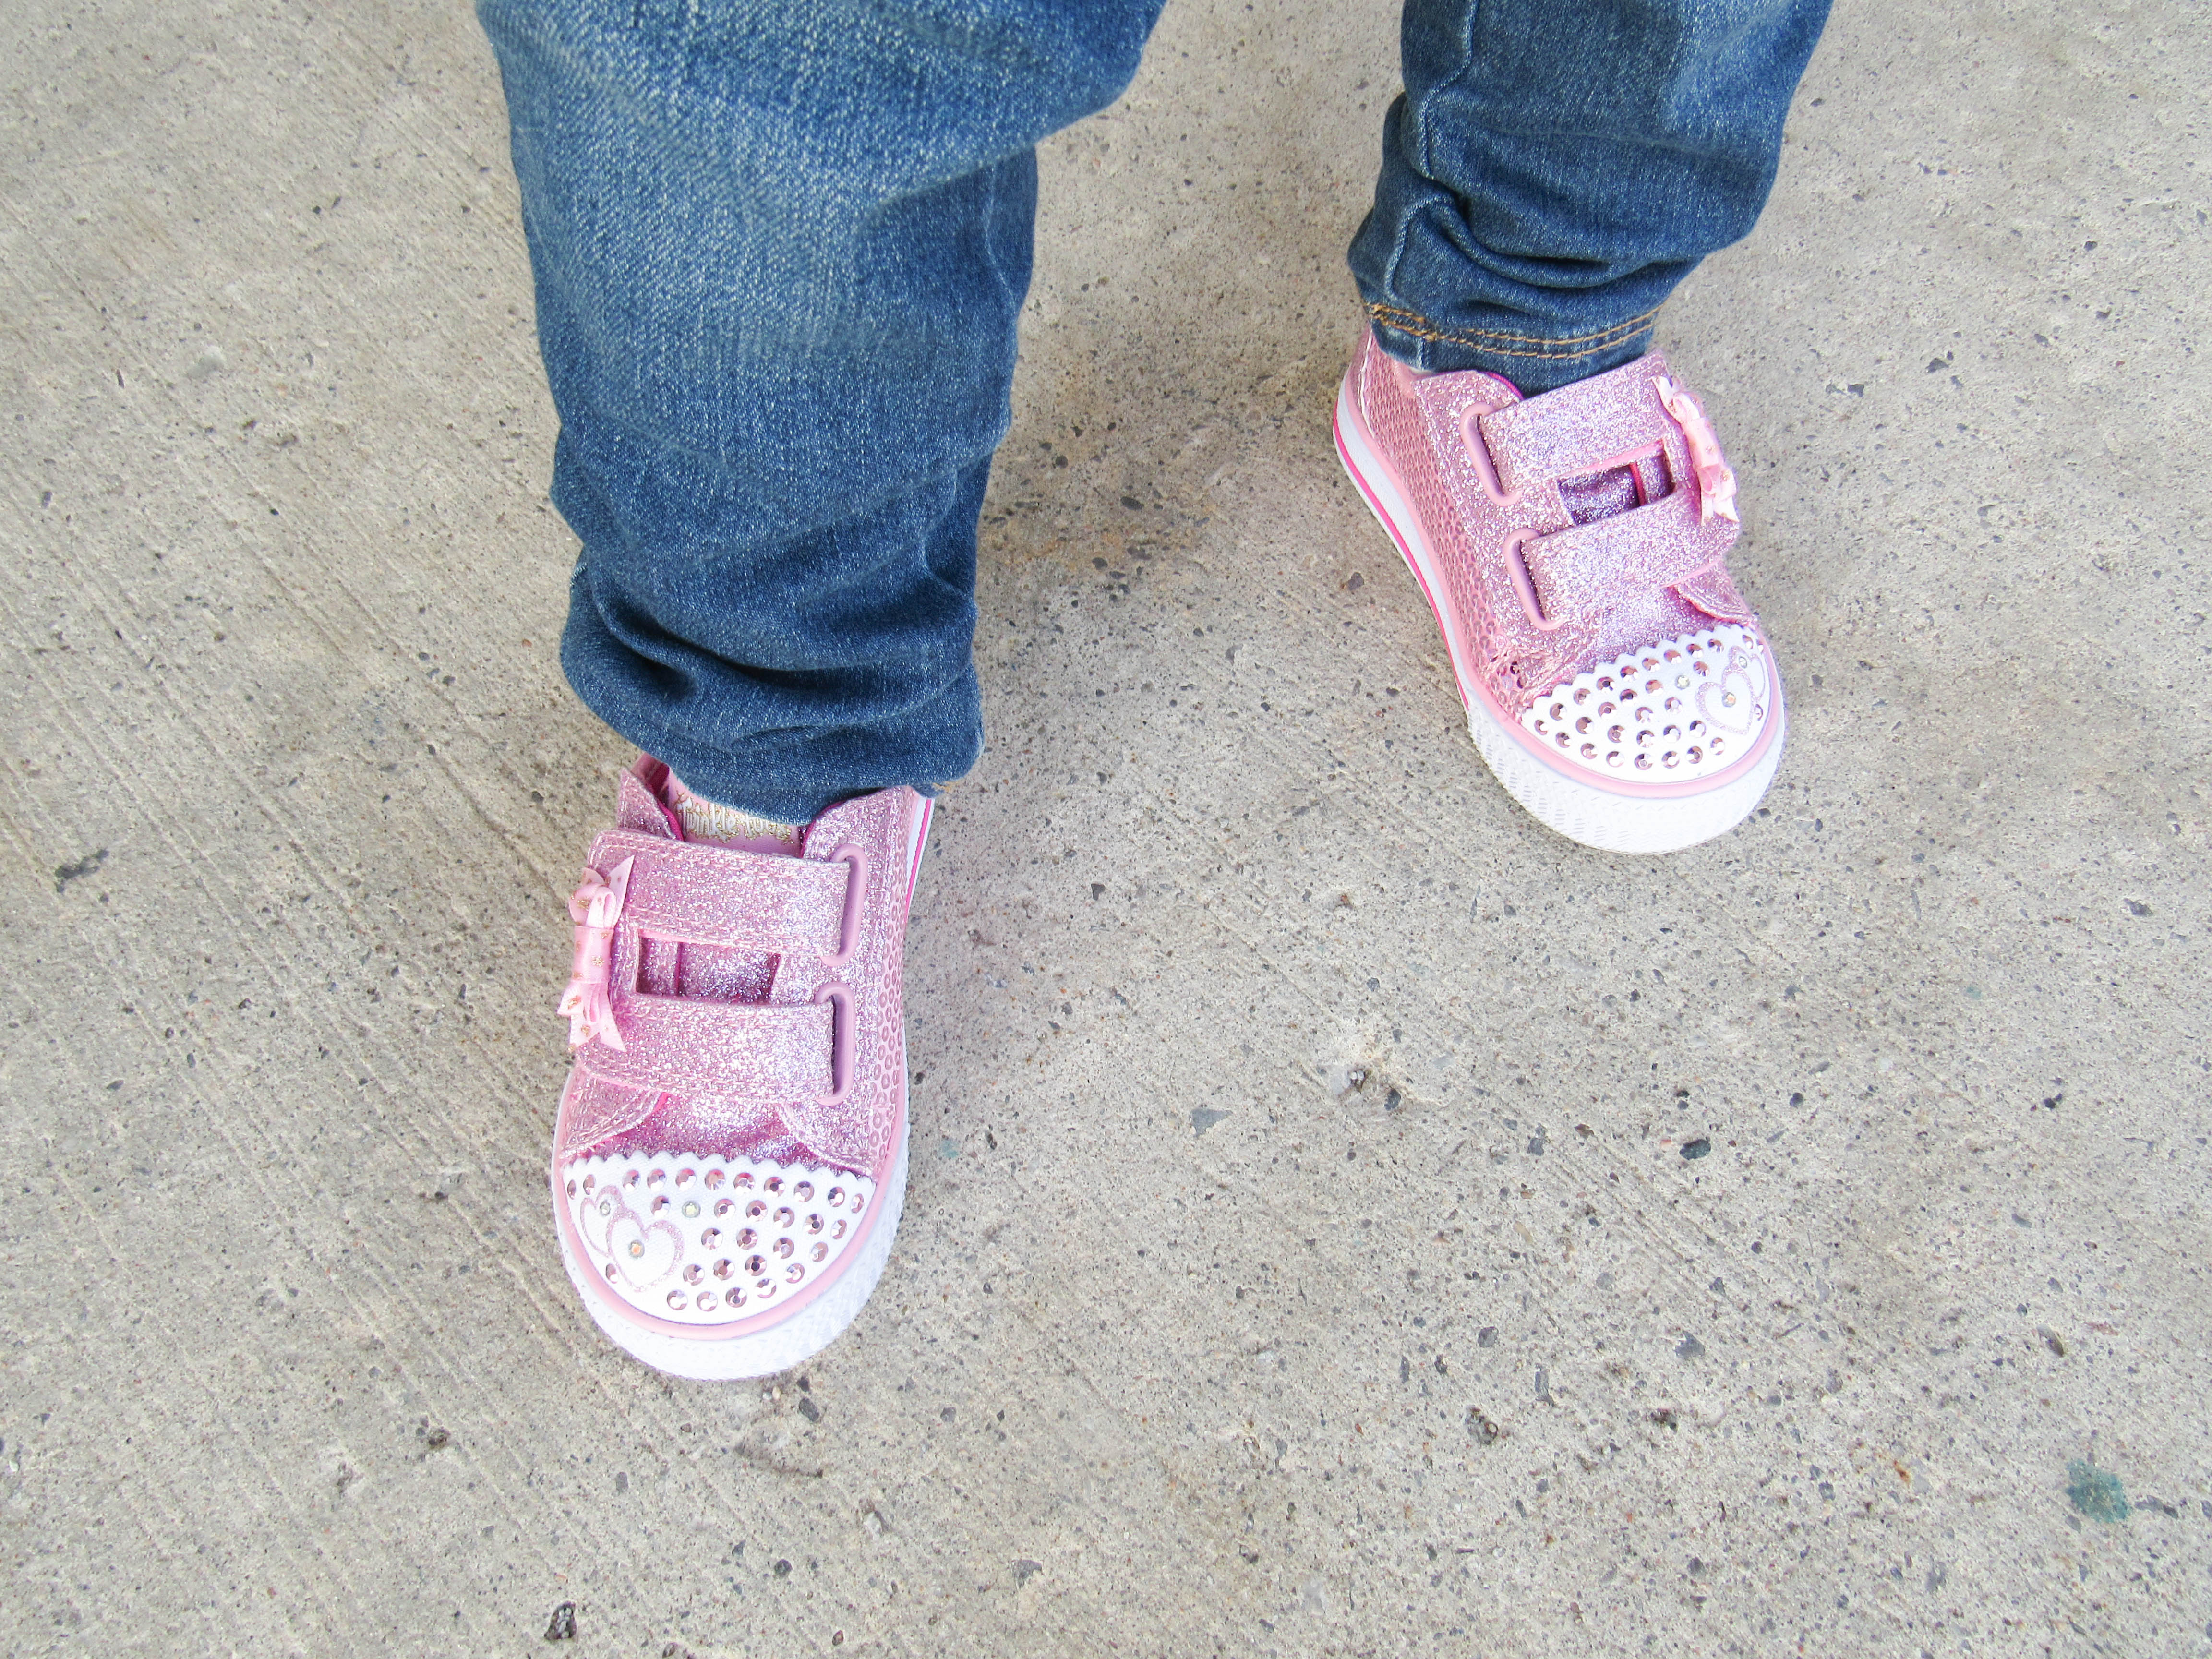 Back-to-School Shoes for Girls from Sears